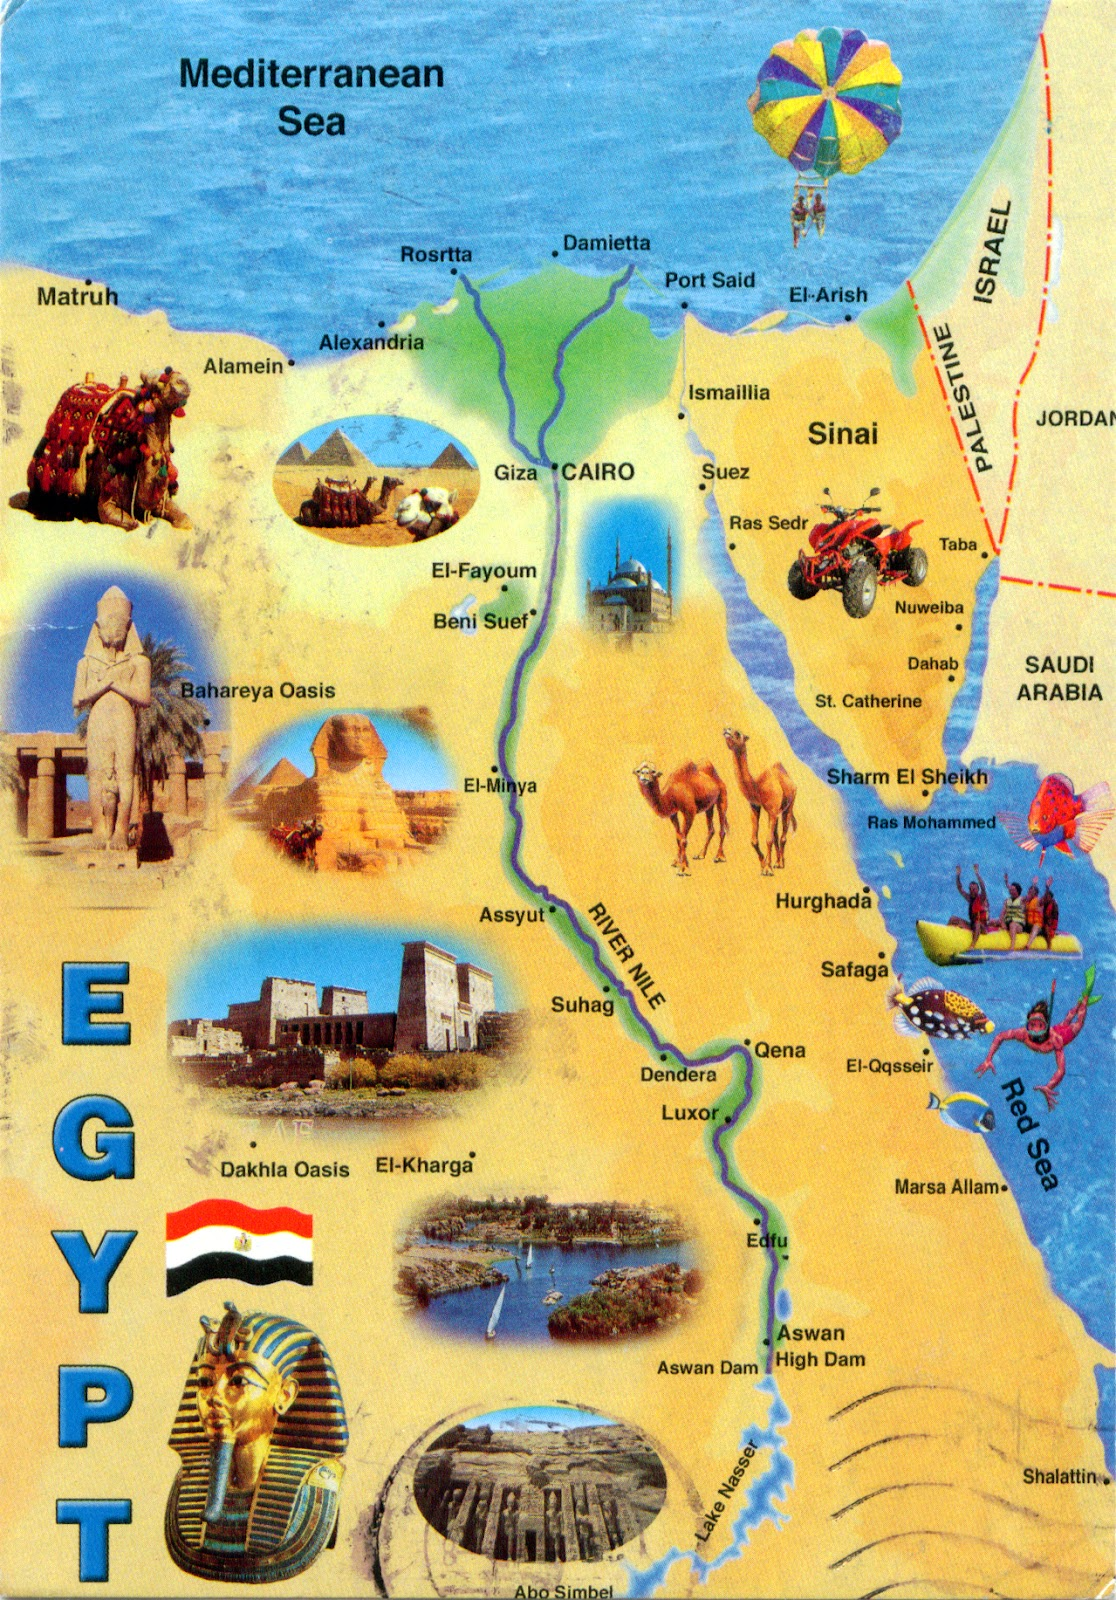 World Come To My Home 0215 Egypt The Map Of The Two Lands